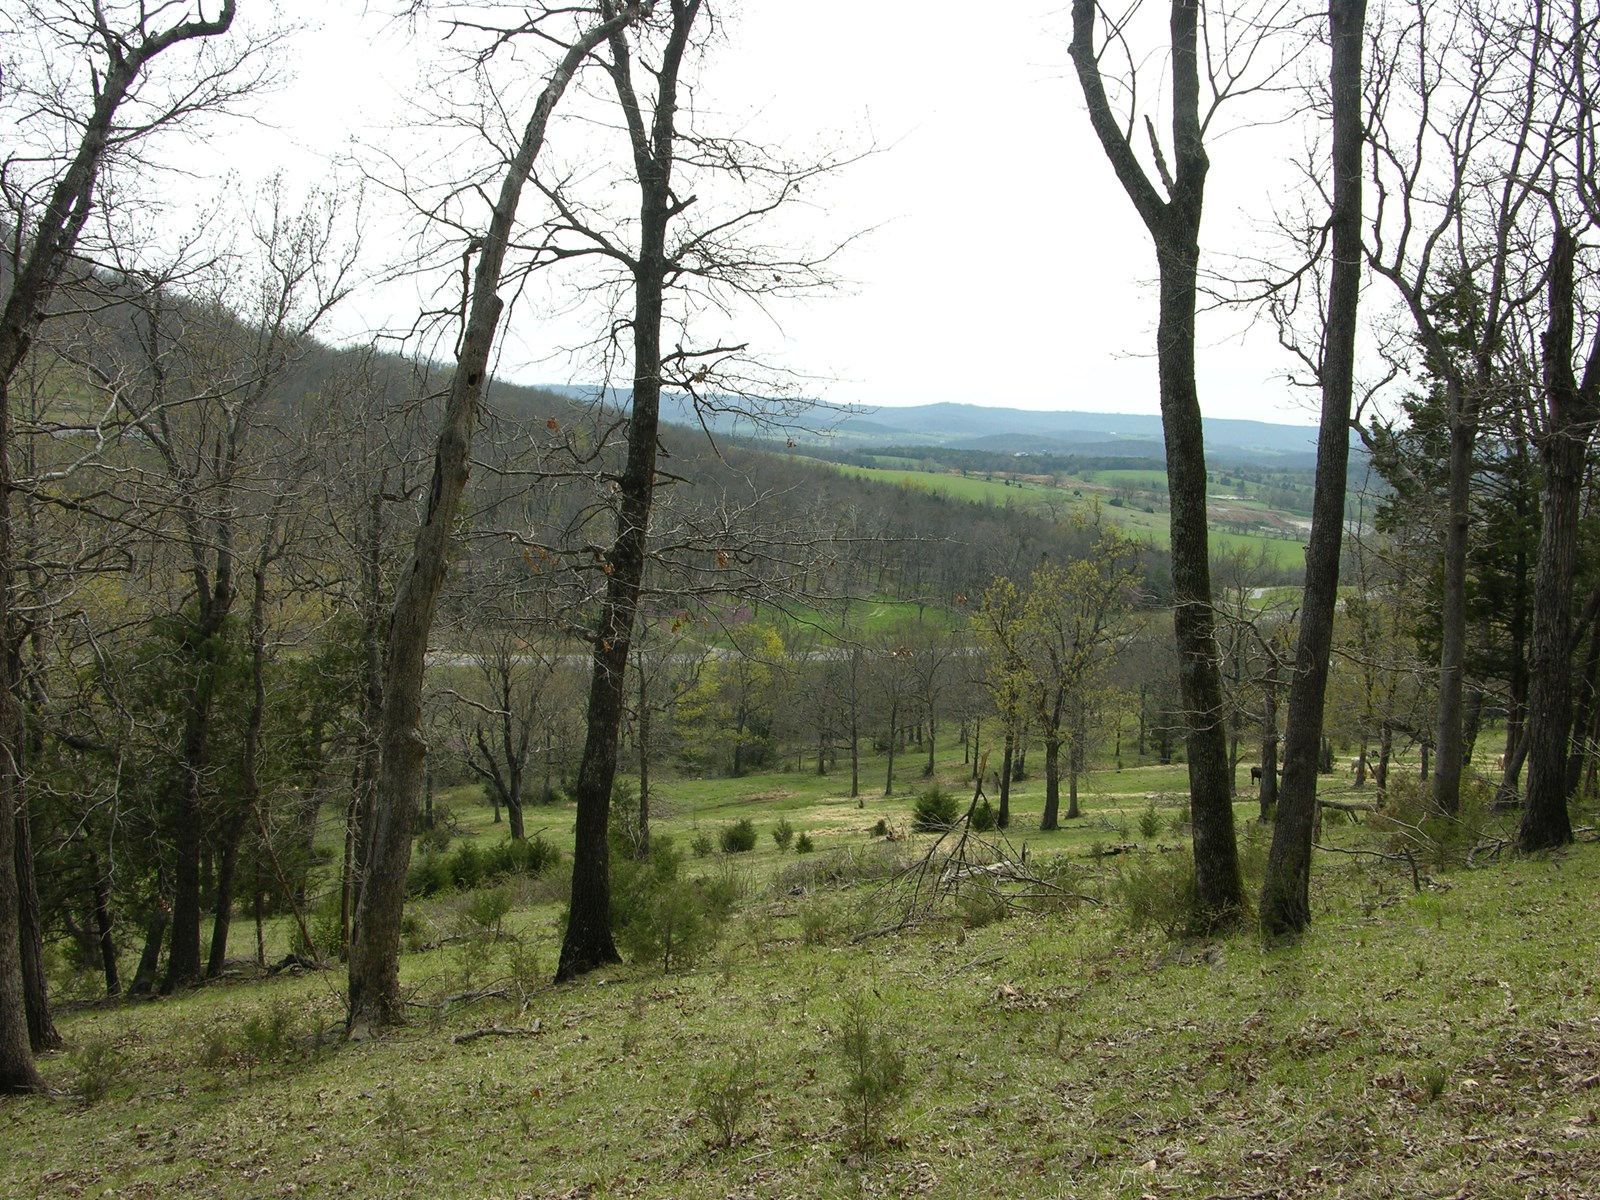 Pasutre & wooded Land for sale w/ Hwy 62 frontage Berryville